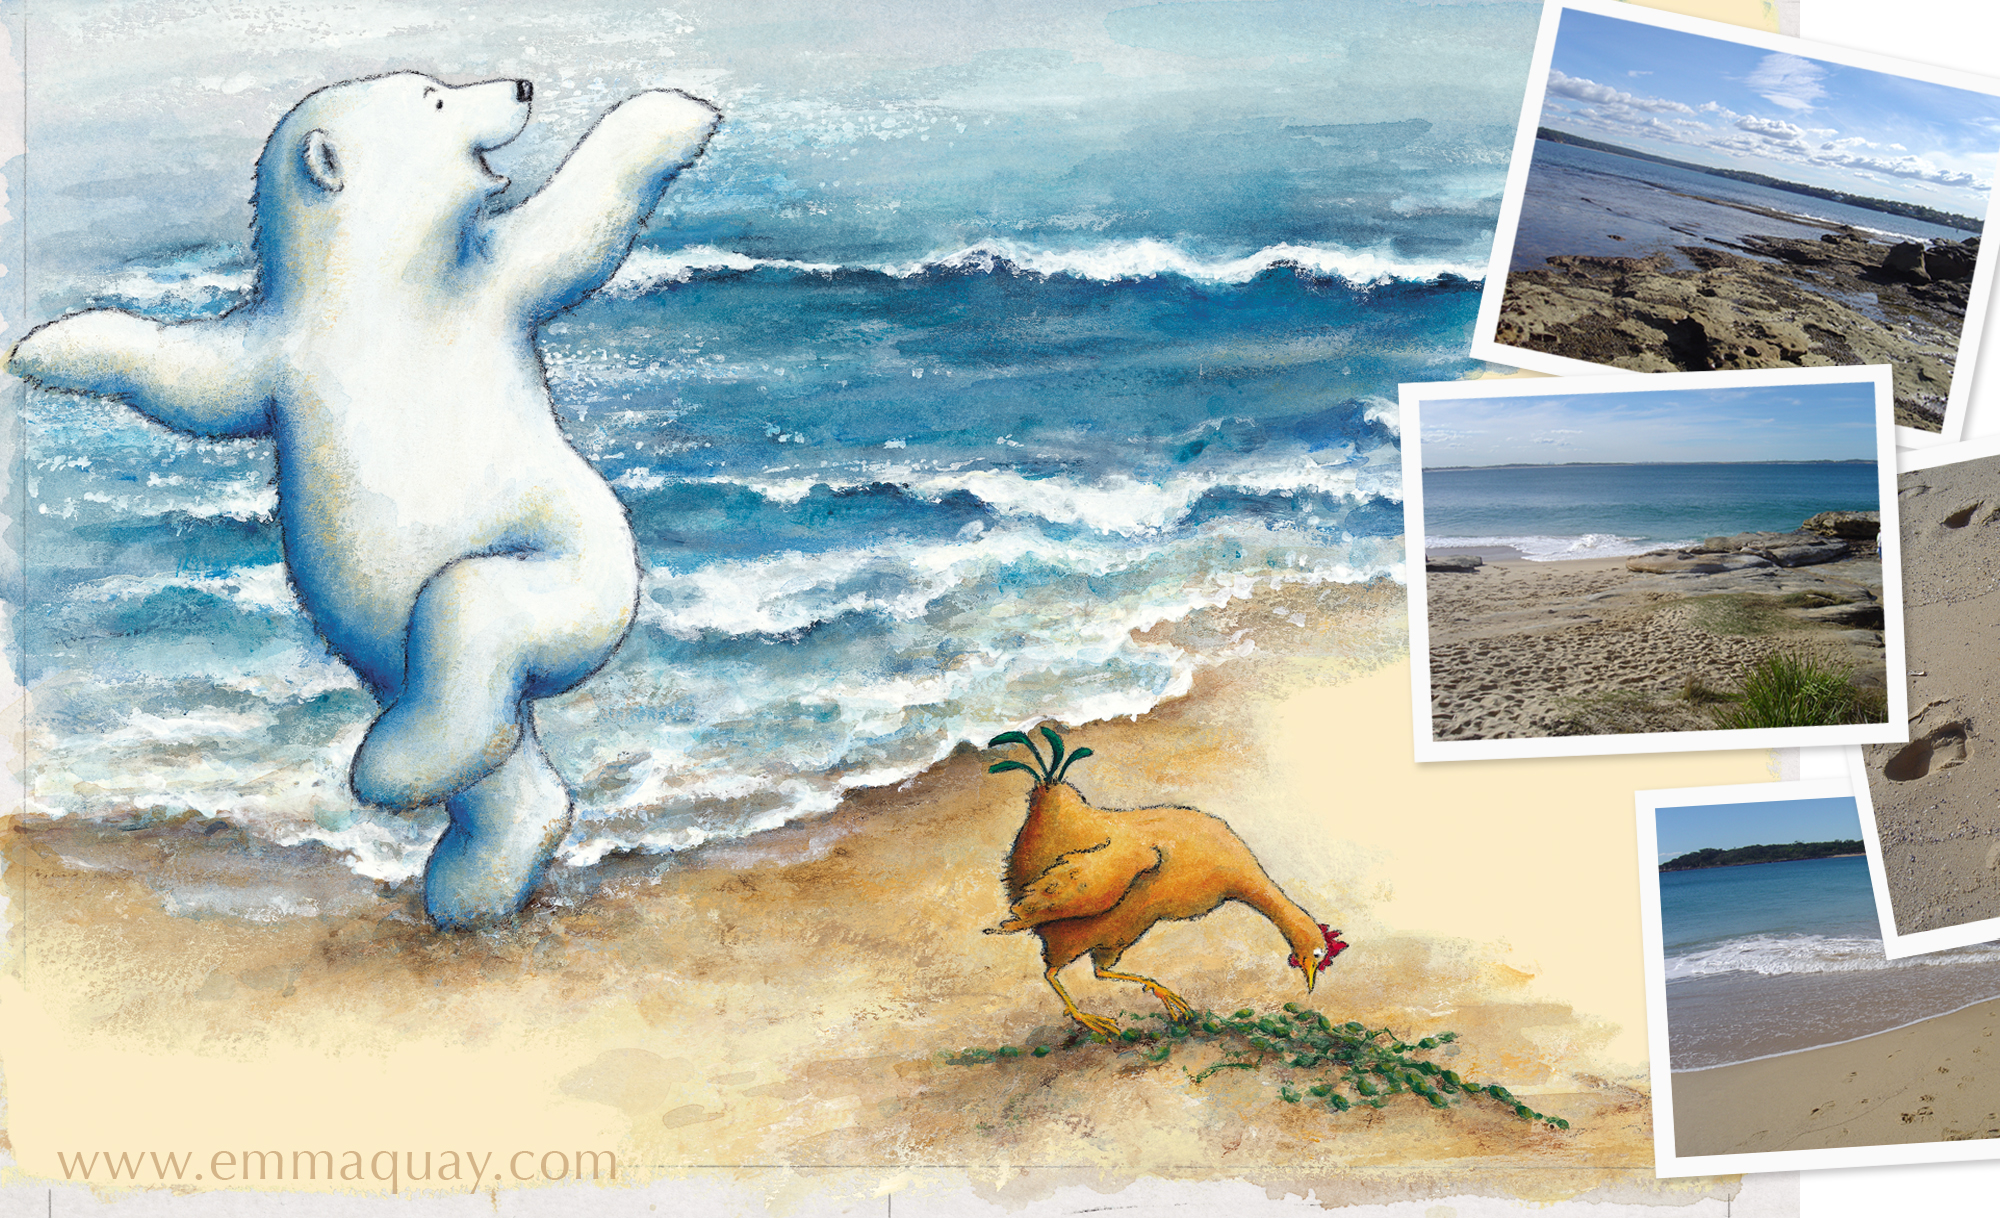 Before I painted the illustrations for  Bear and Chook by the Sea,  I went to Jibbon Beach on the edge of the Royal National Park, NSW to sketch and take photos.